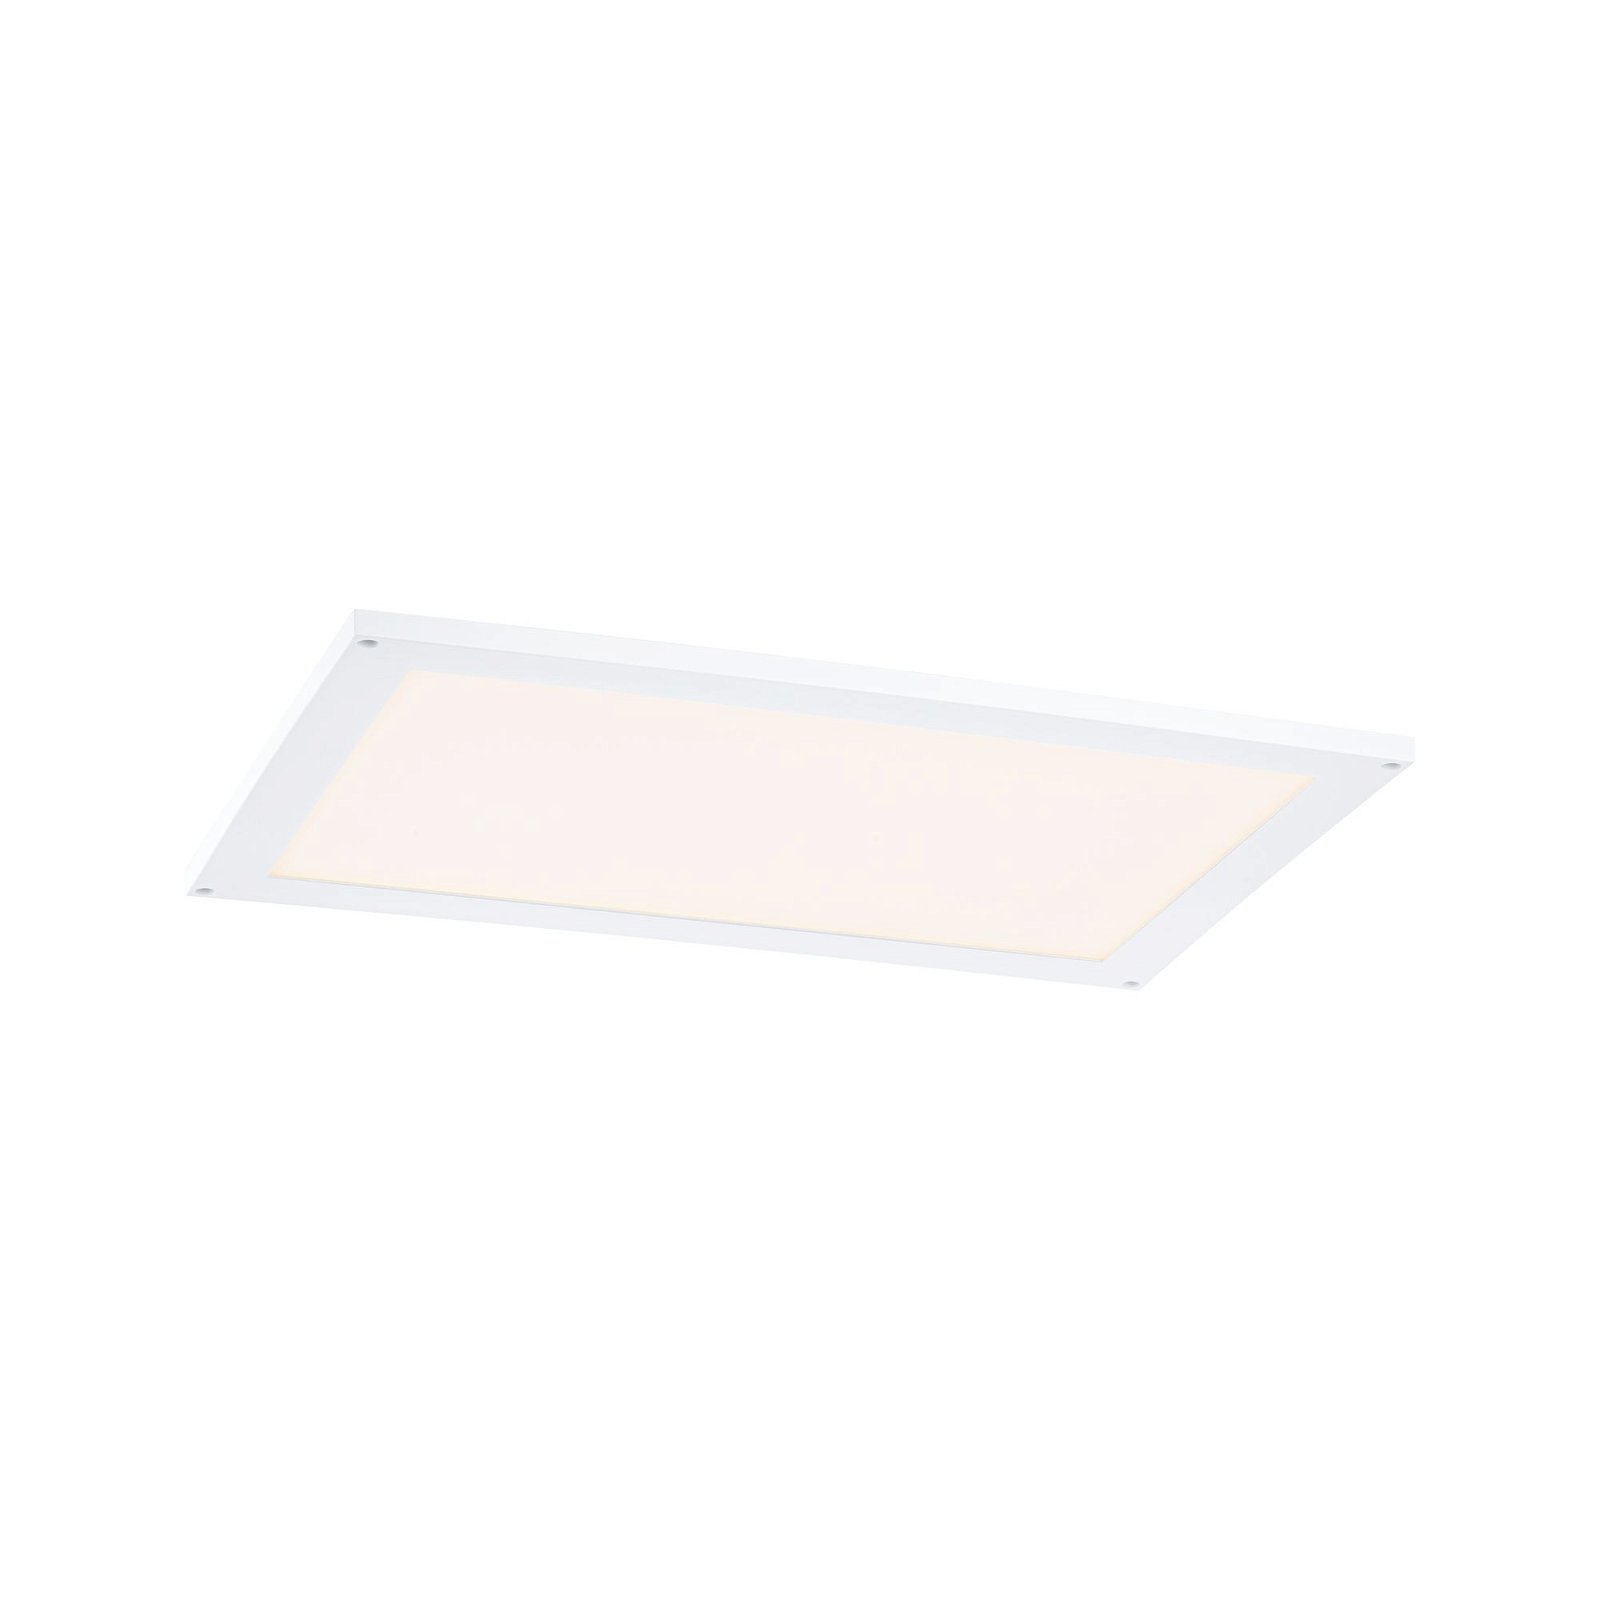 Clever Connect LED-paneel Flad Tunable White 6W Wit mat